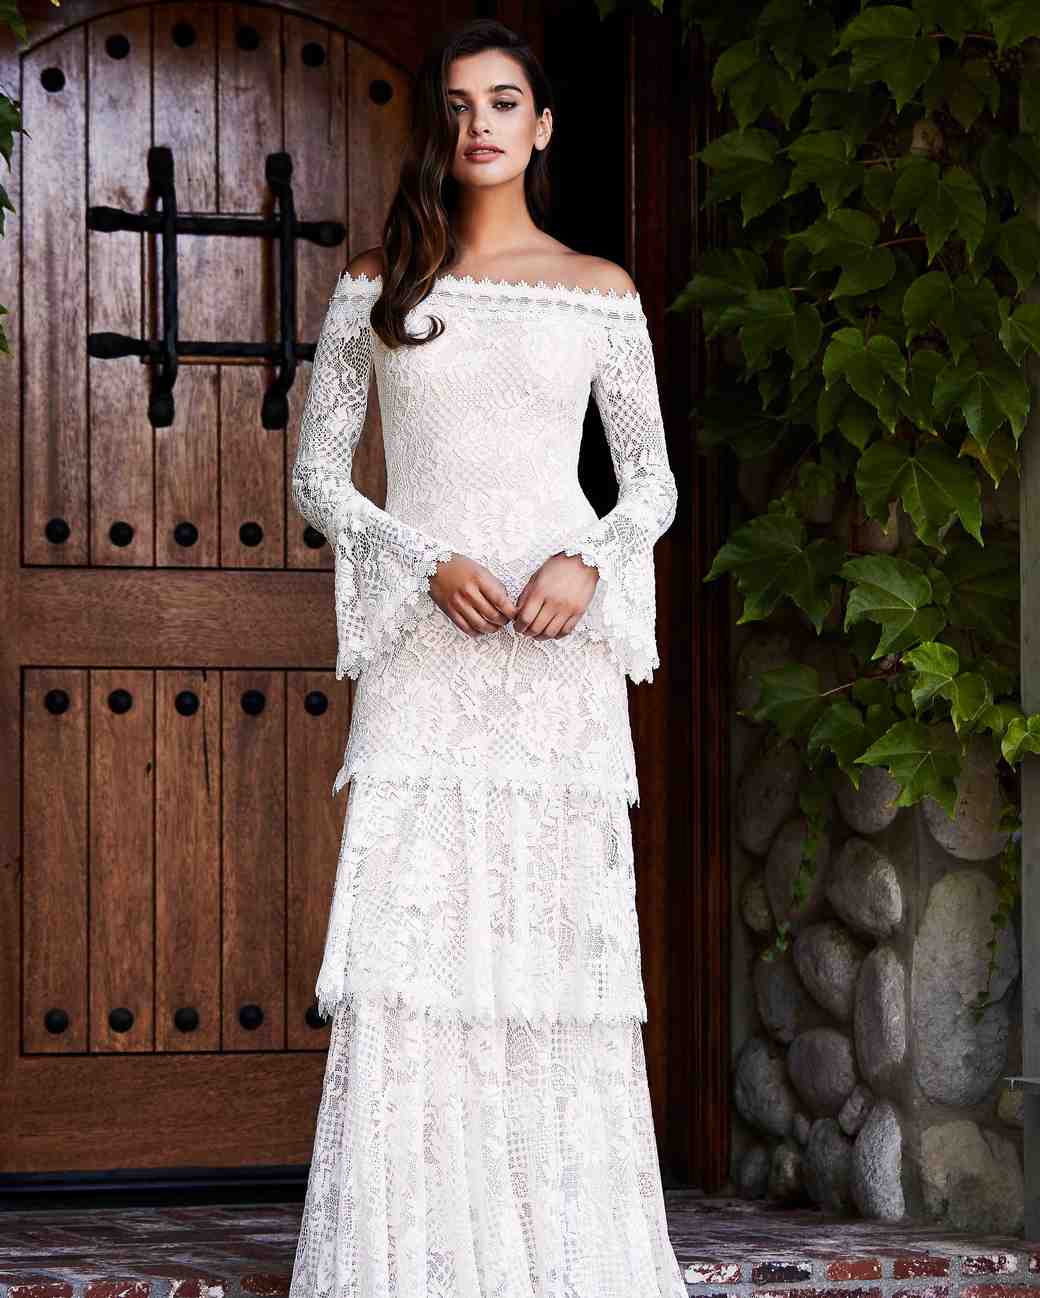 tadashi shoji wedding dress fall 2018 tiered lace off the shoulder